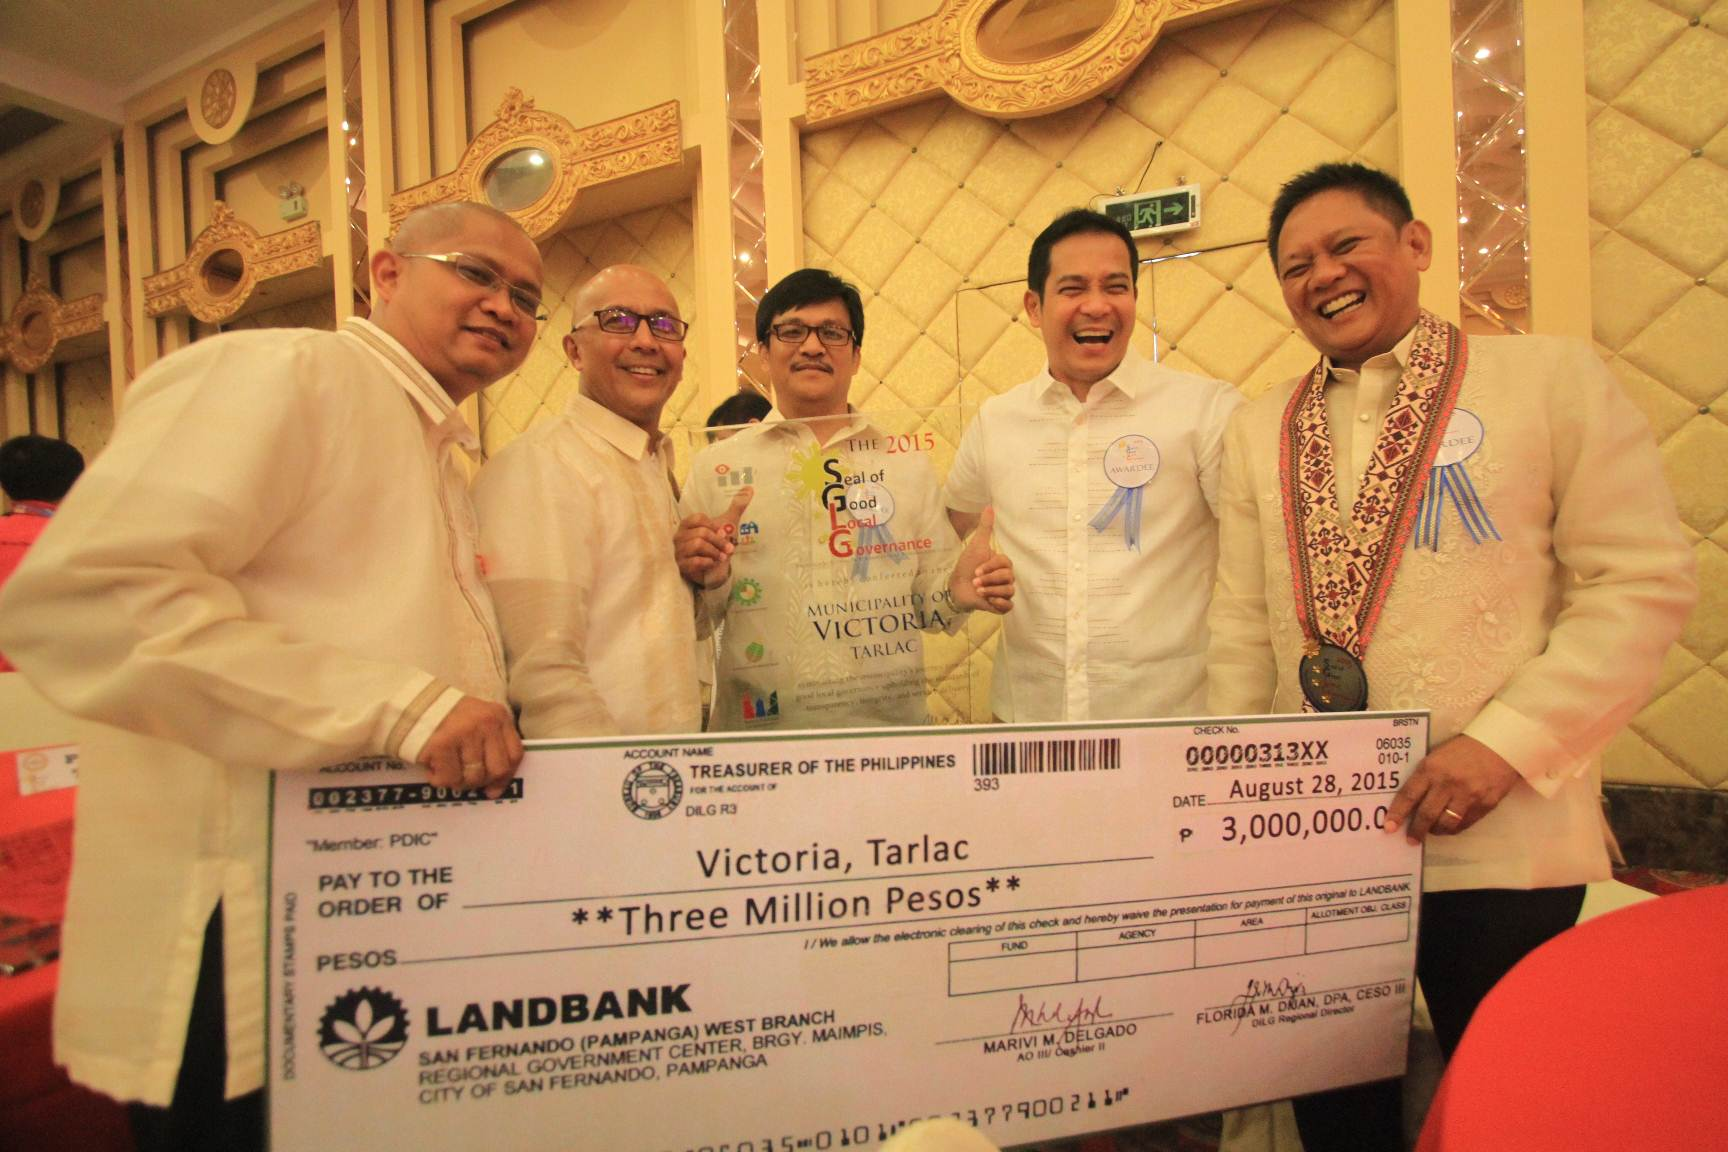 2015 SEAL OF GOOD LOCAL GOVERNANCE AWARDING CEREMONIES